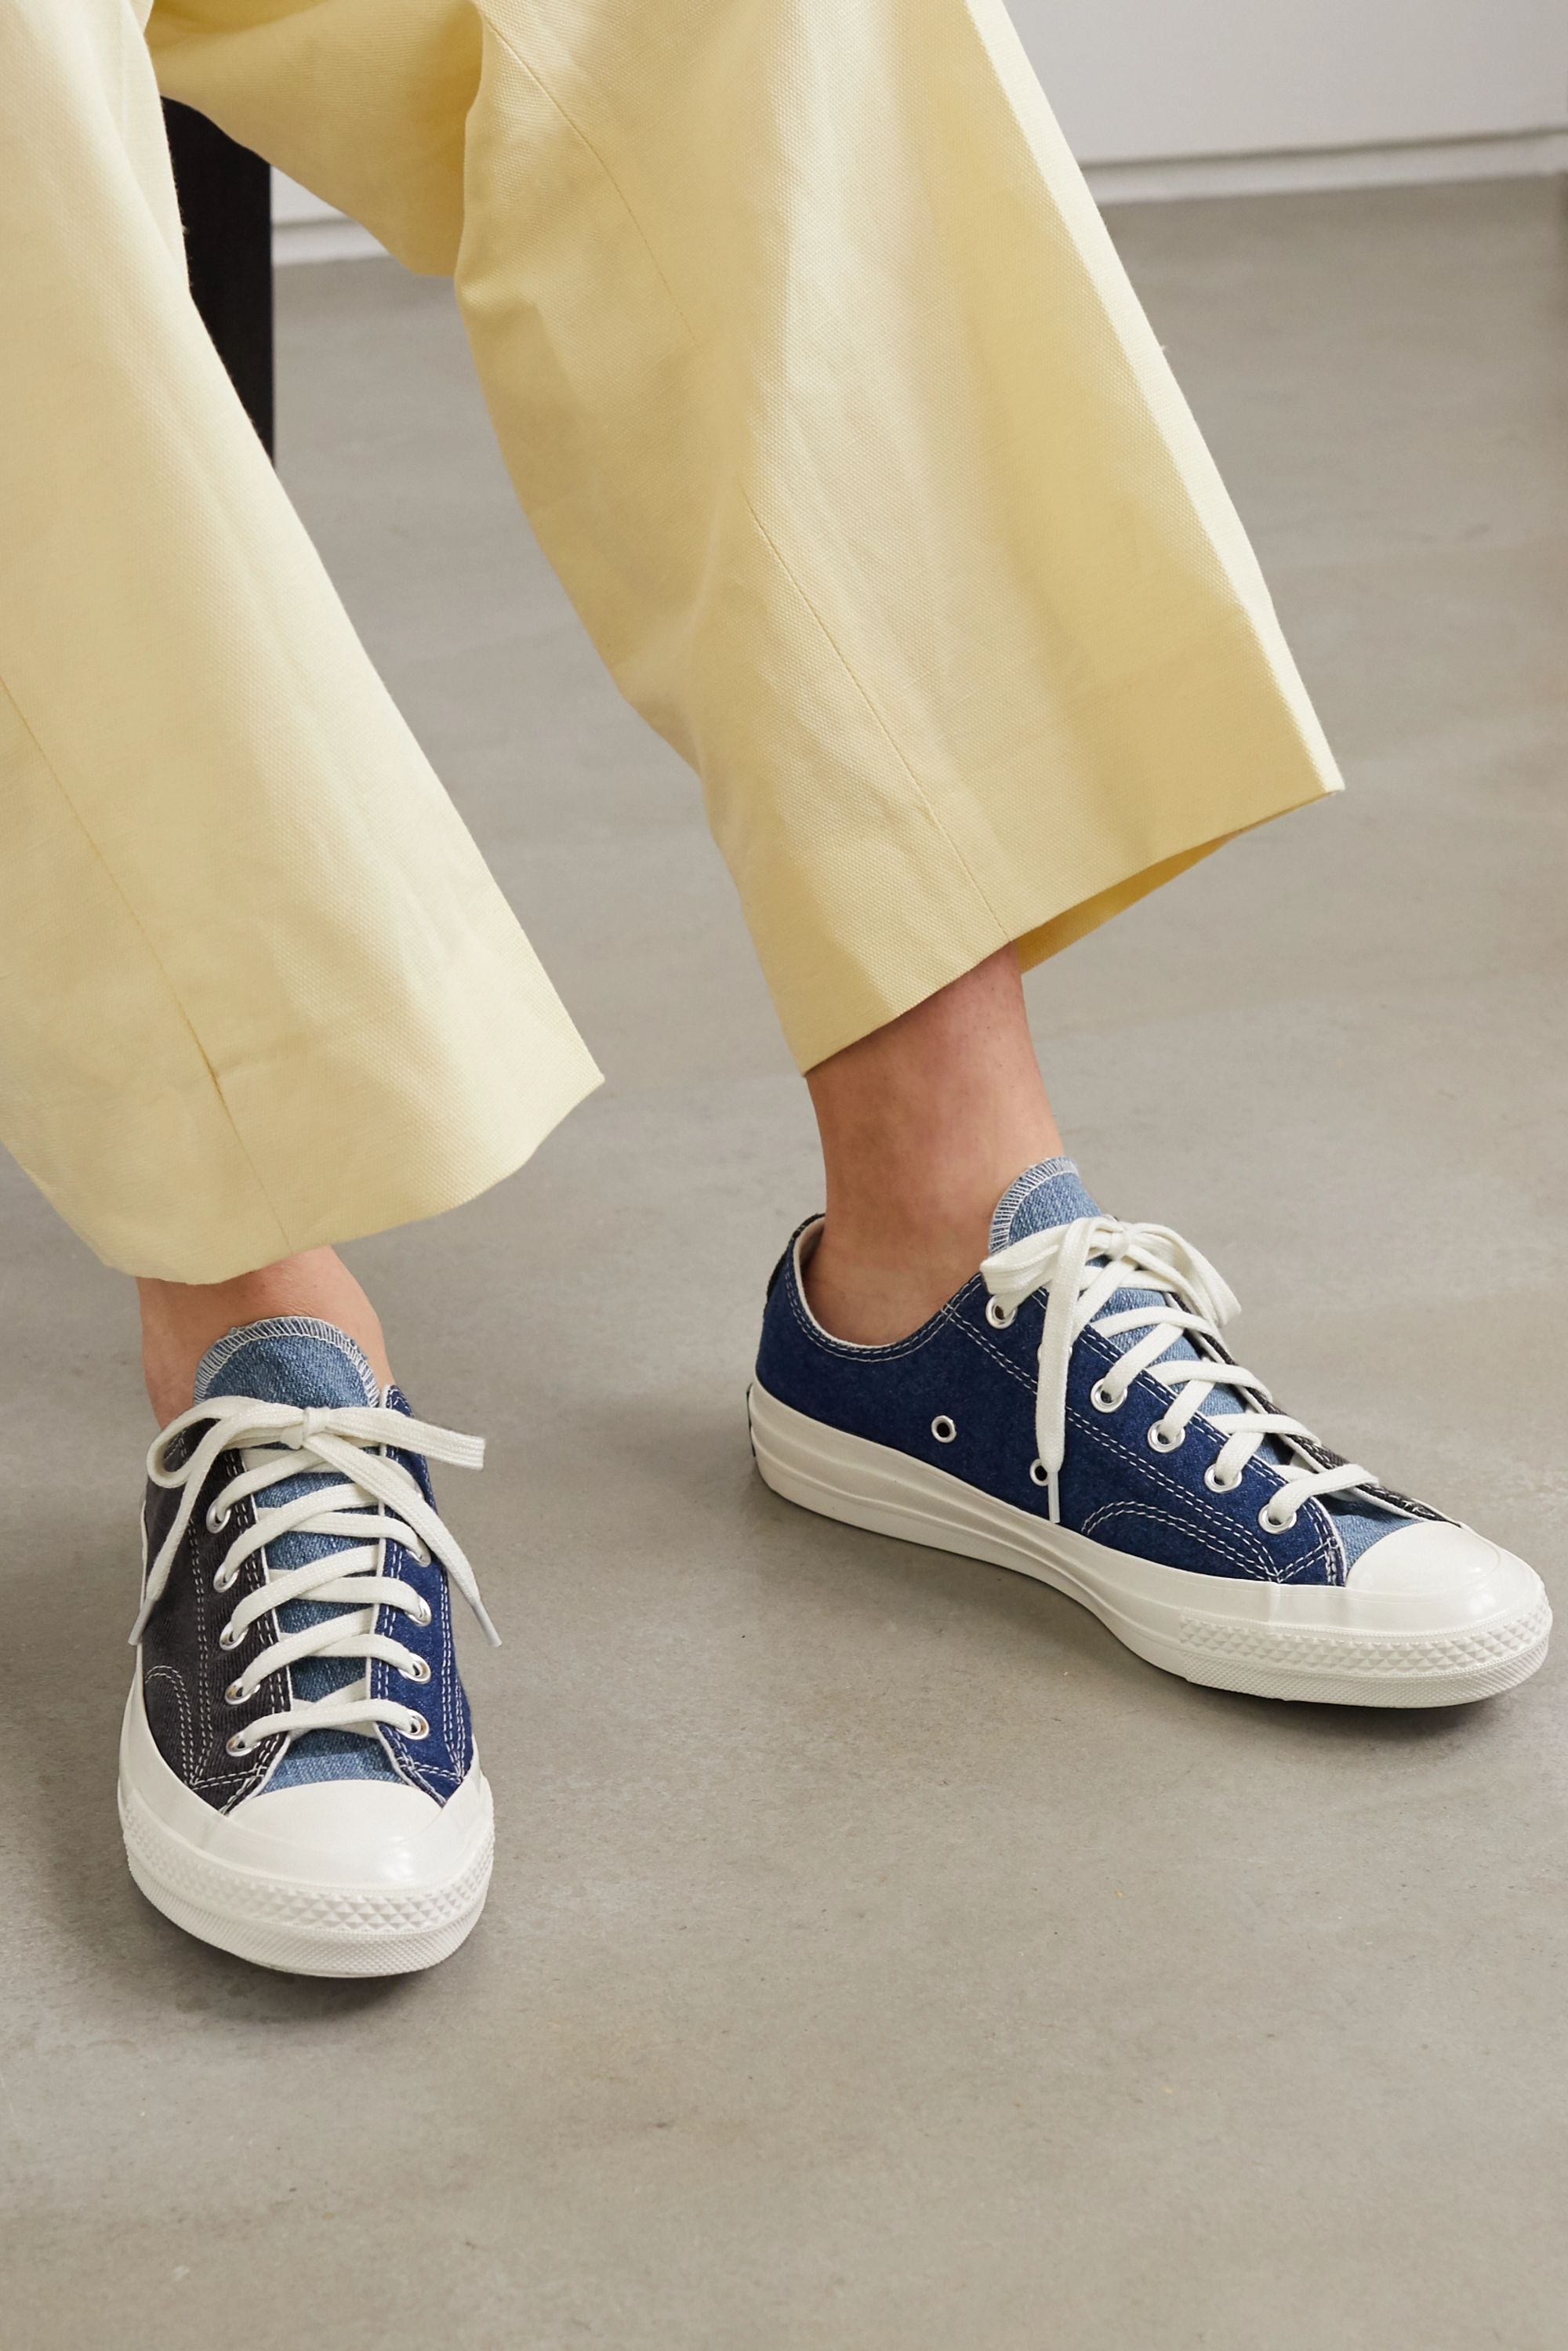 Chuck Taylor All Star 70 denim sneakers